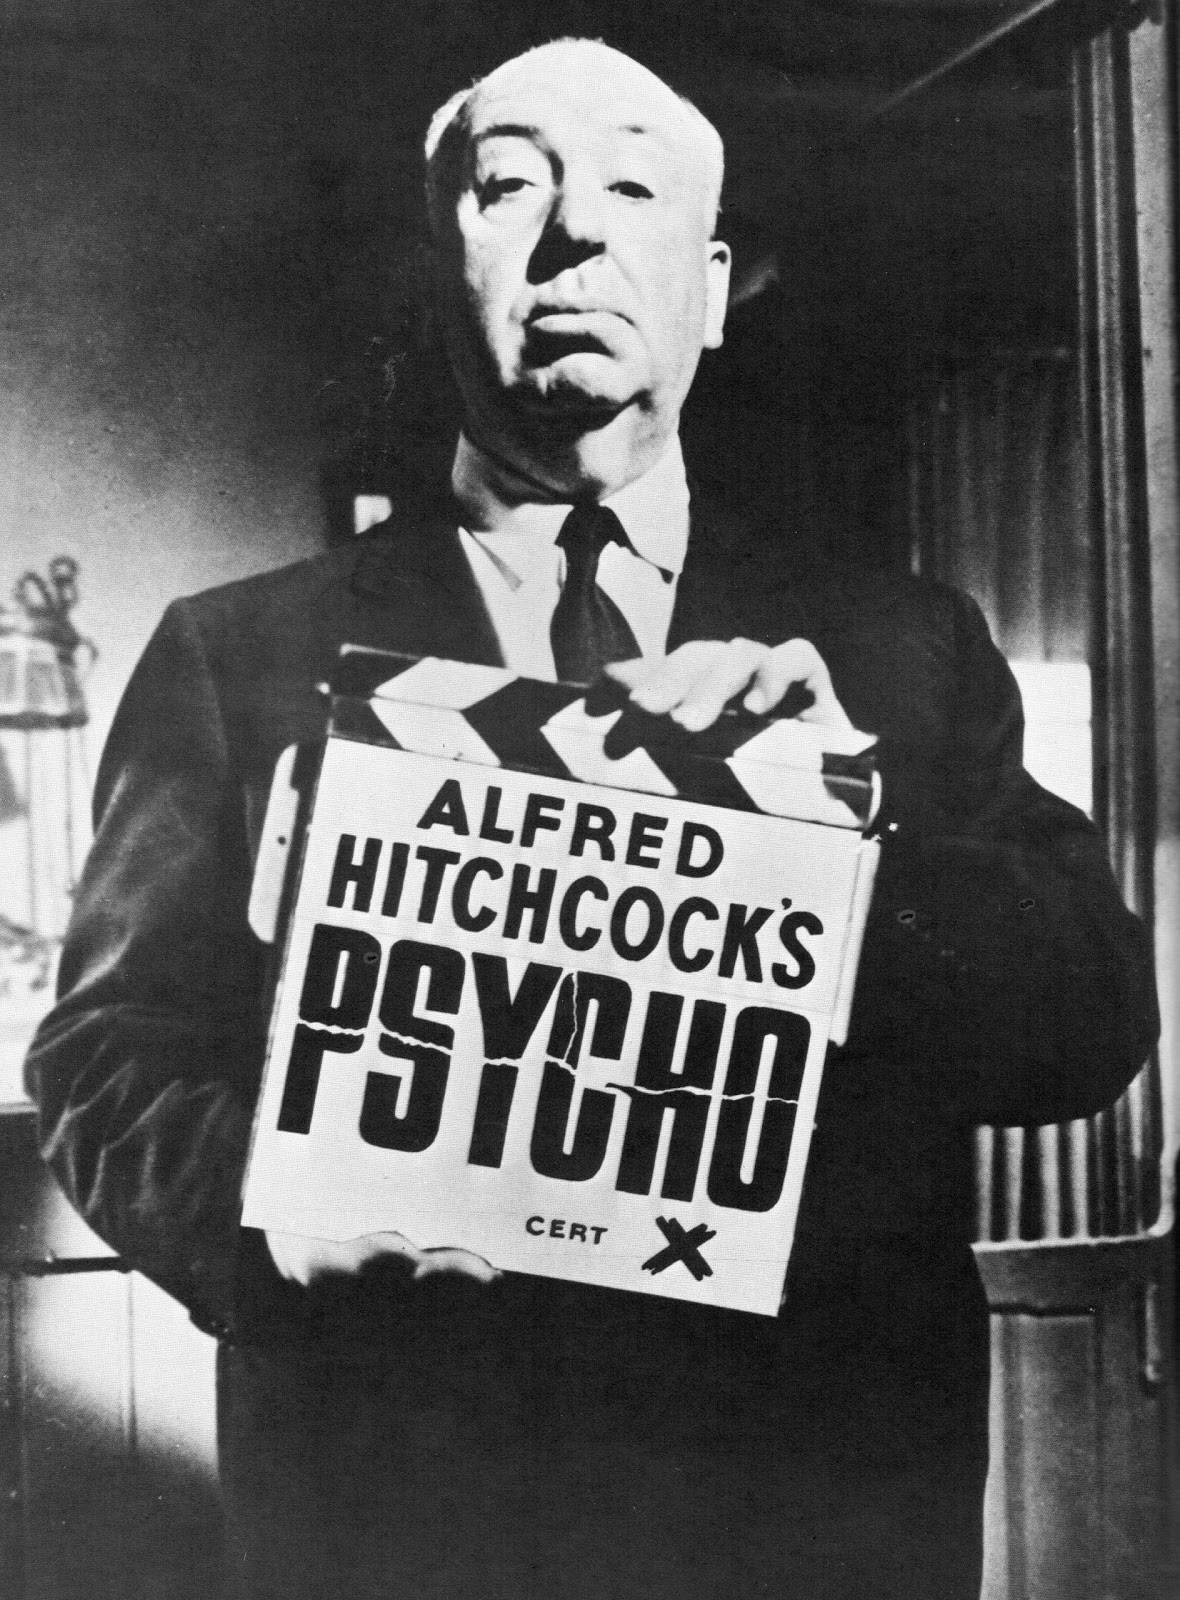 a review of psycho A review of psycho - a review of psycho he was known to his audience as the 'master of suspense' and what hitchcock mastered was not only the art of making films but also the task of taming his own mad imagination hitchcock told his stories through intelligent plots, witty.